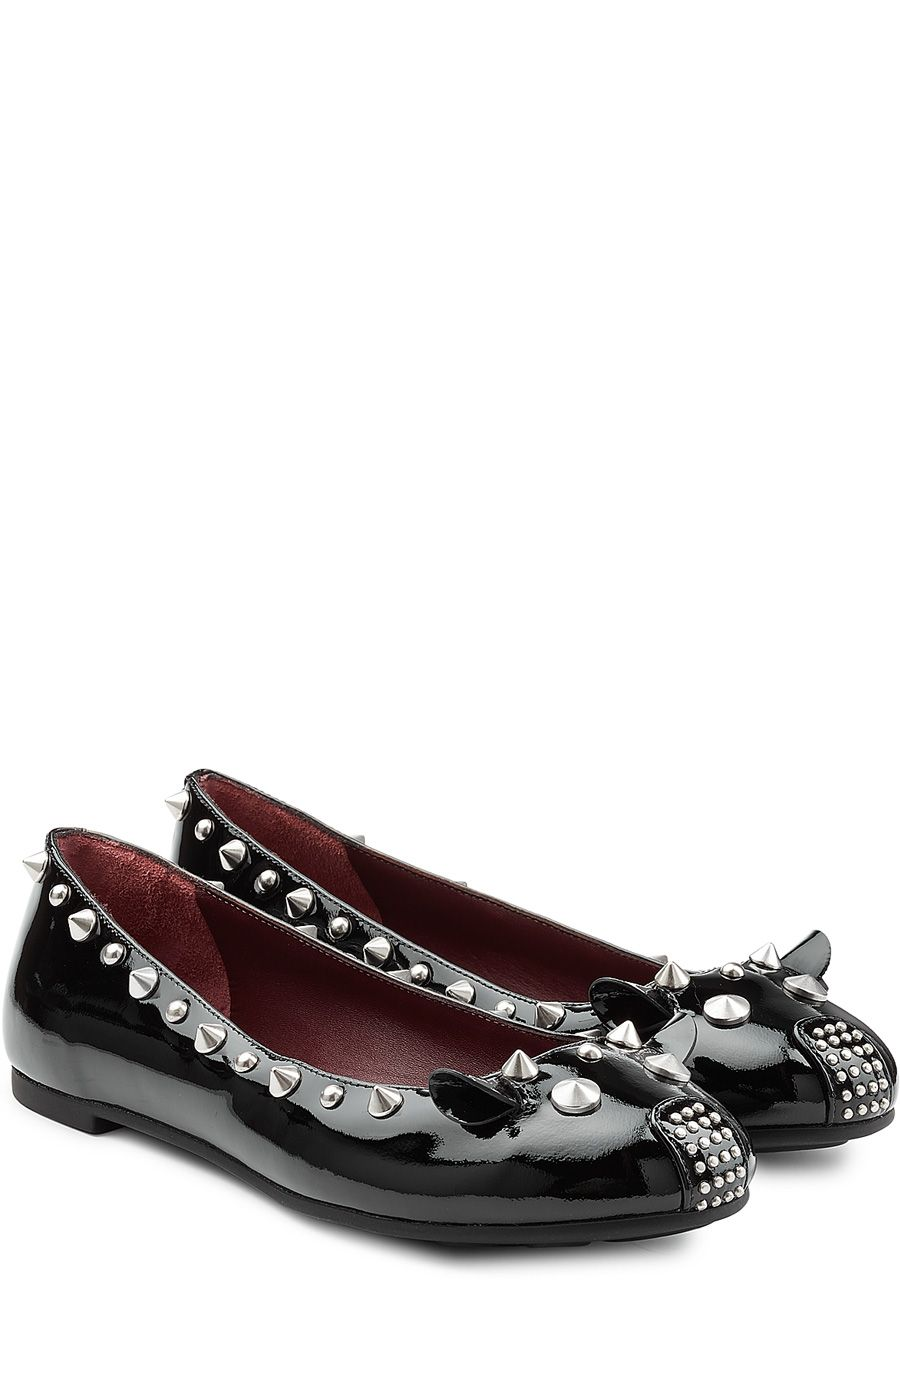 Punk Mouse Patent Leather Ballerinas Marc by Marc Jacobs